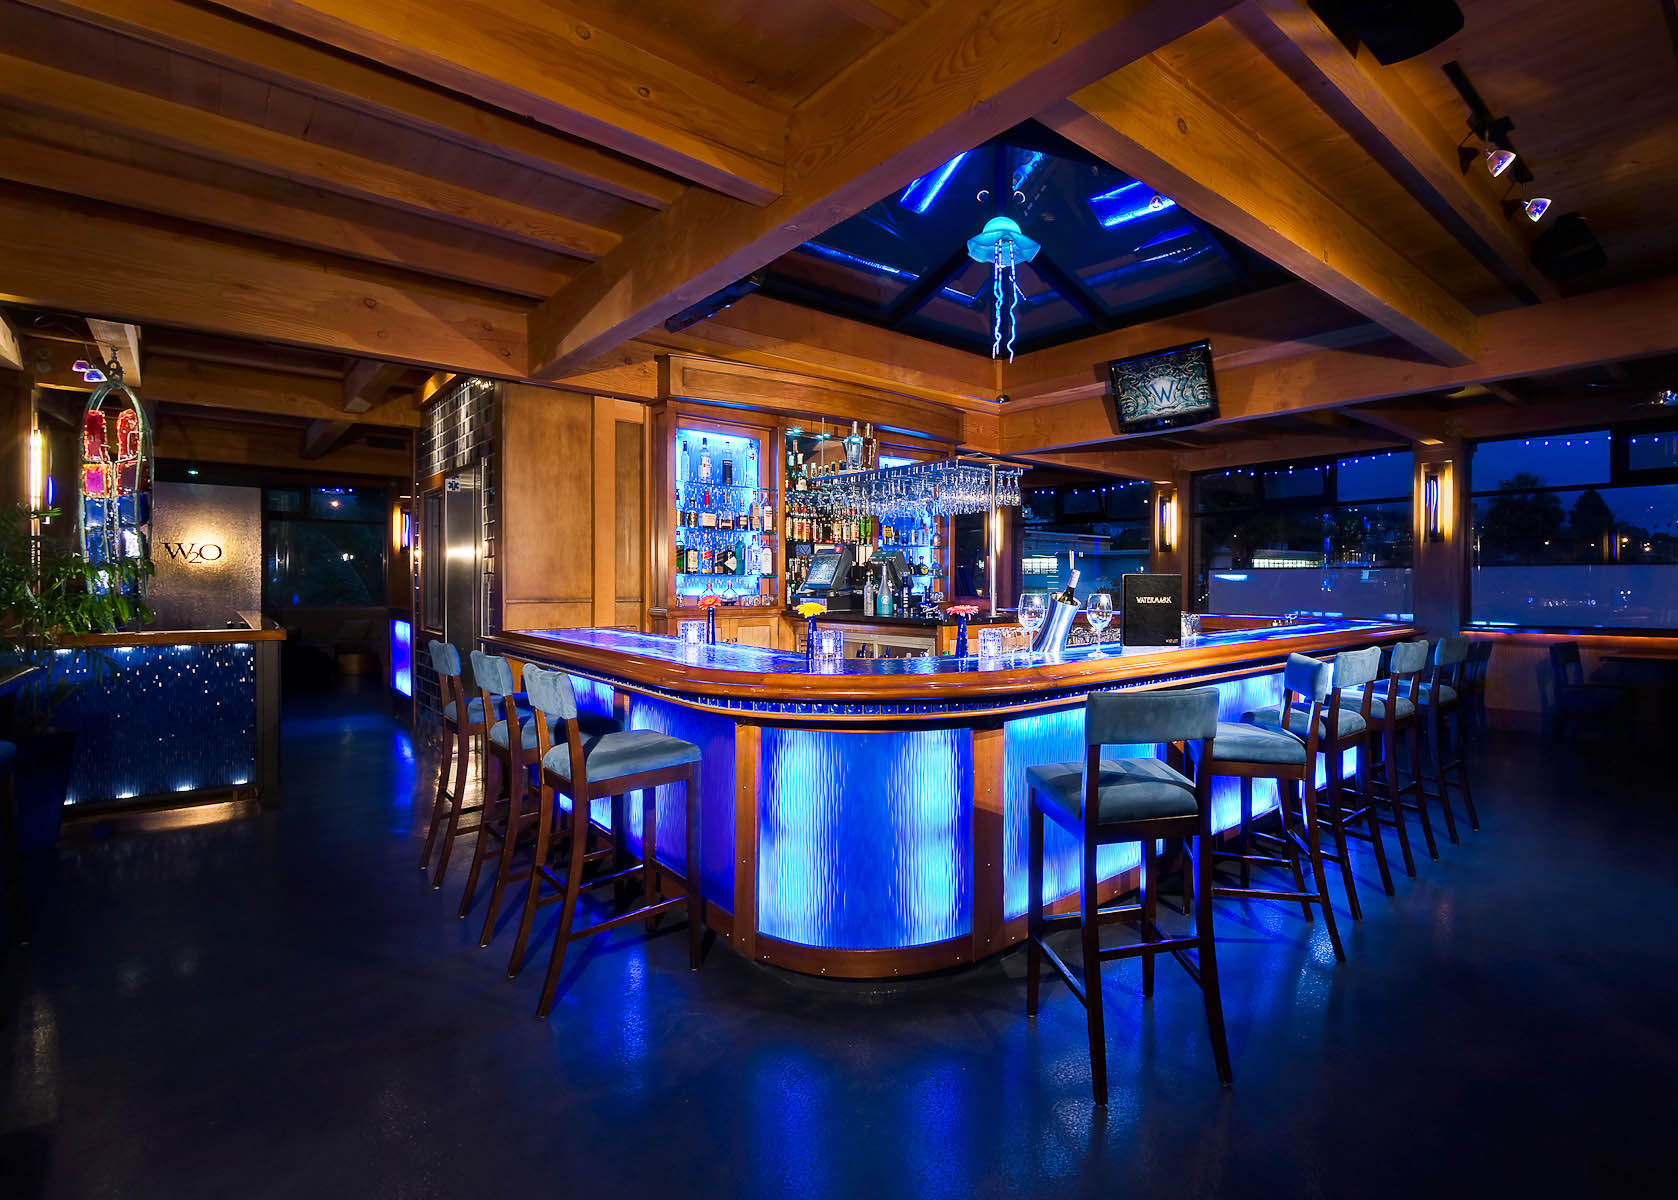 Interior architectural photo of Main Street Architects' Watermark W2O Bar in Ventura, CA